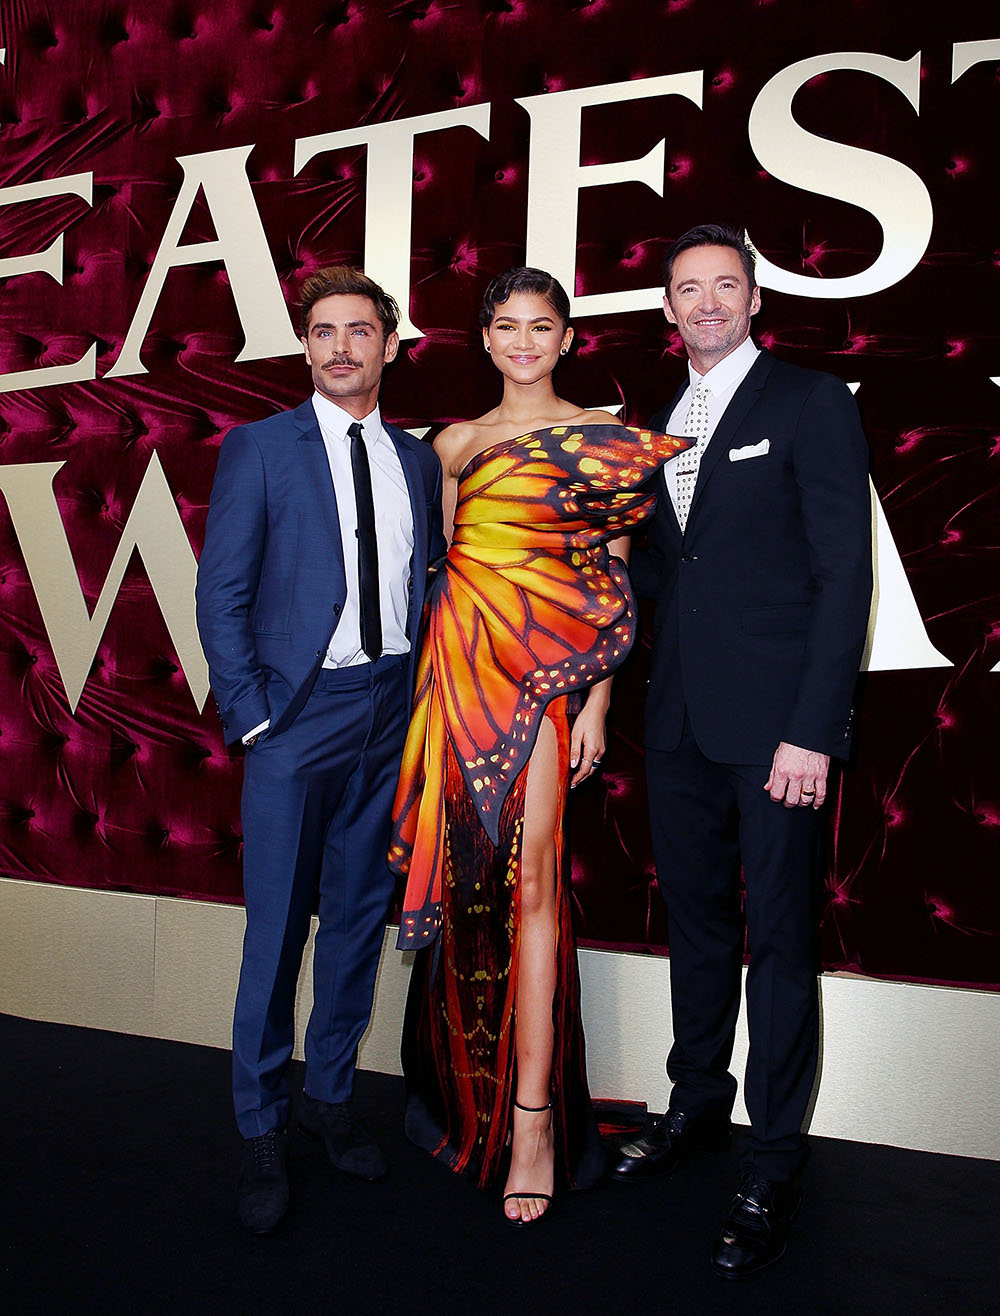 Zac Efron, Zendaya, Hugh Jackman attend The Greatest Showman Sydney Premiere